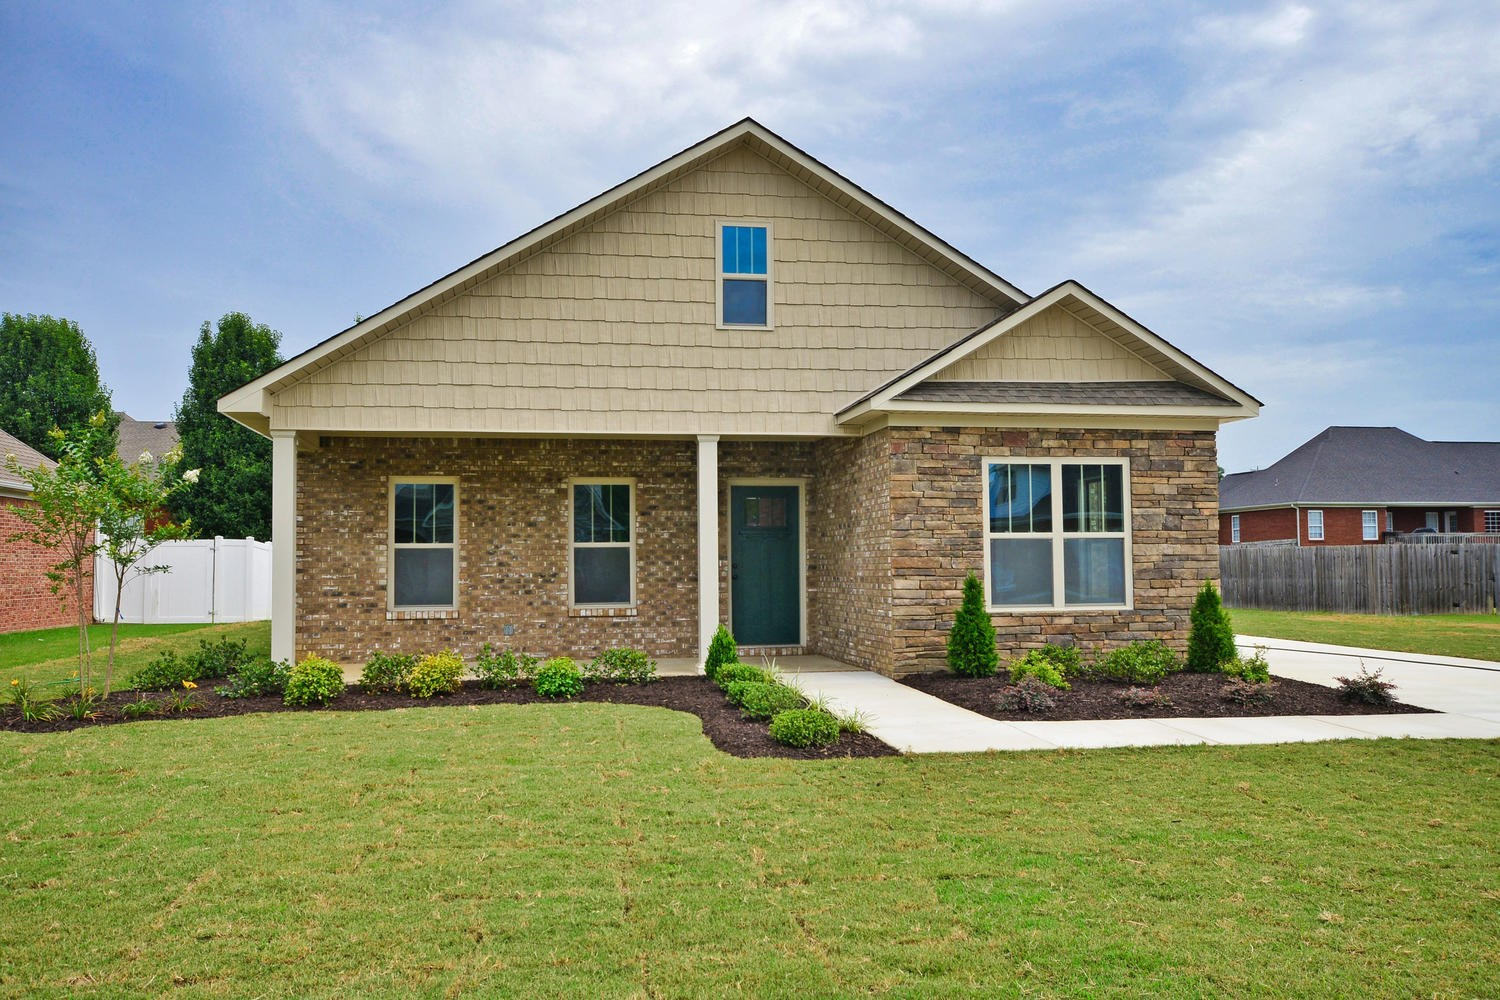 New 3 Bedroom Home For Sale in Hartselle Alabama